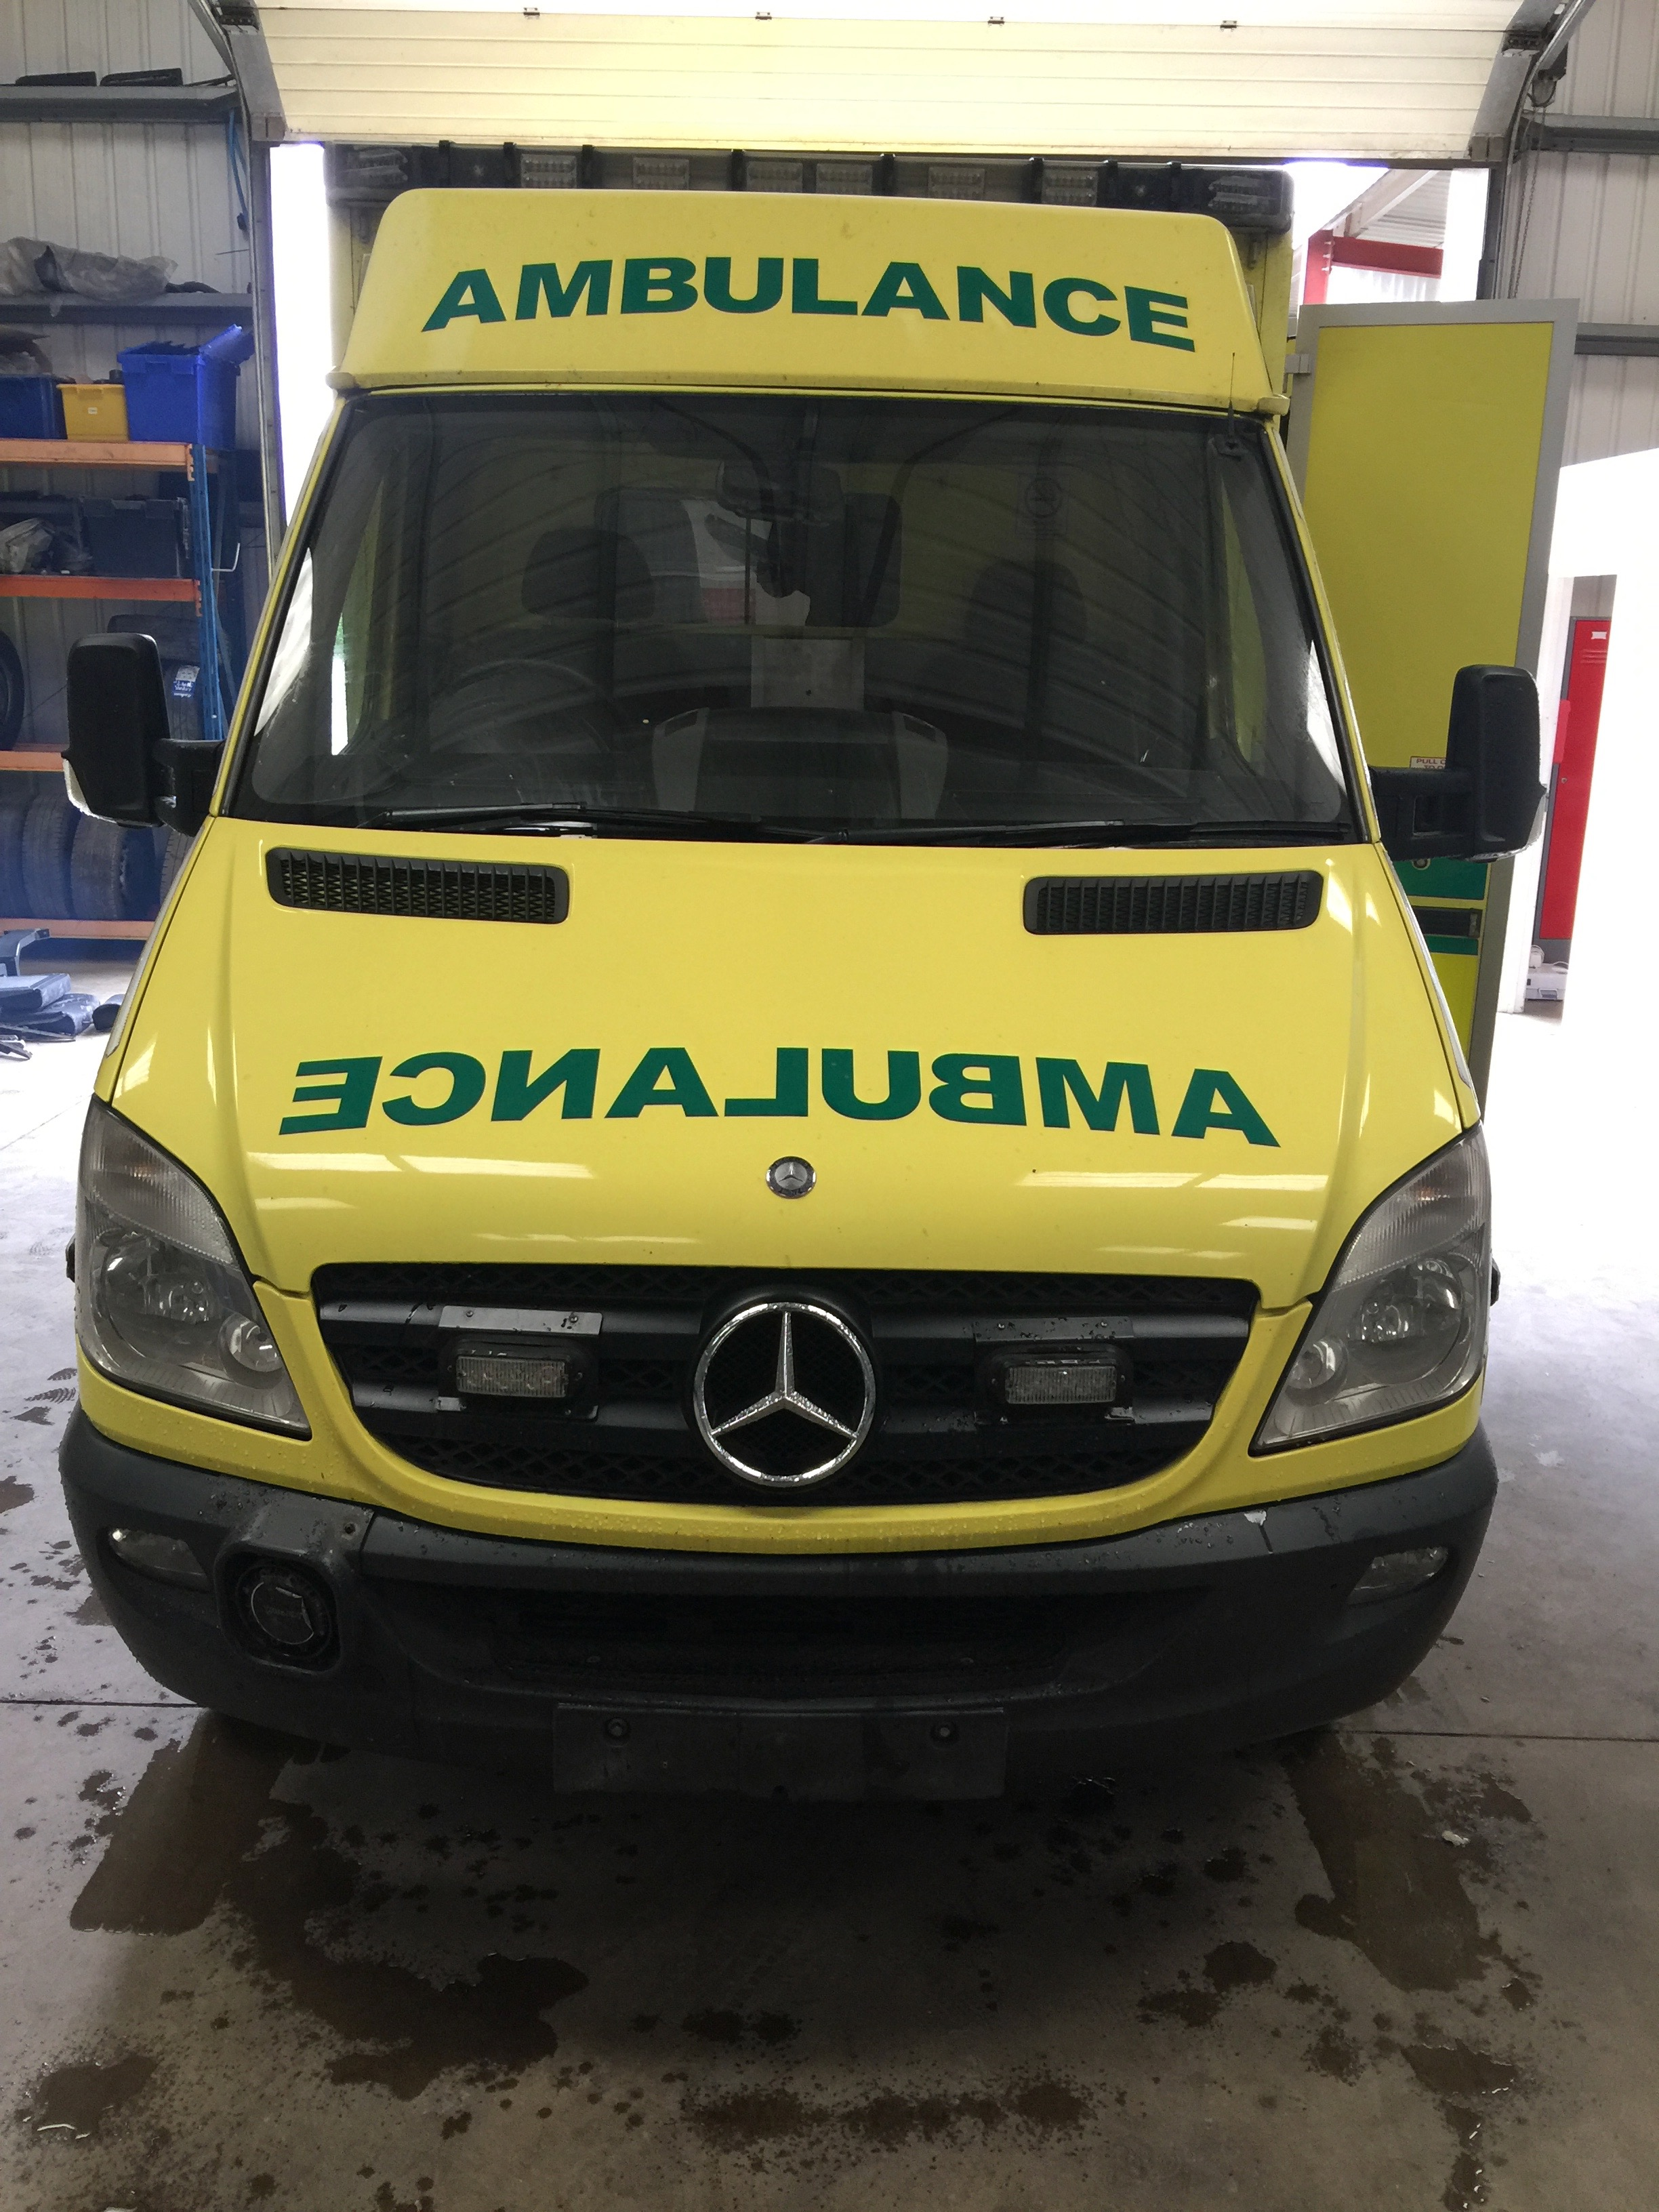 Lot 4 - Mercedes Sprinter wide body HDU ambulance Registration No AY09 CUG, 325408 recorded miles, date of